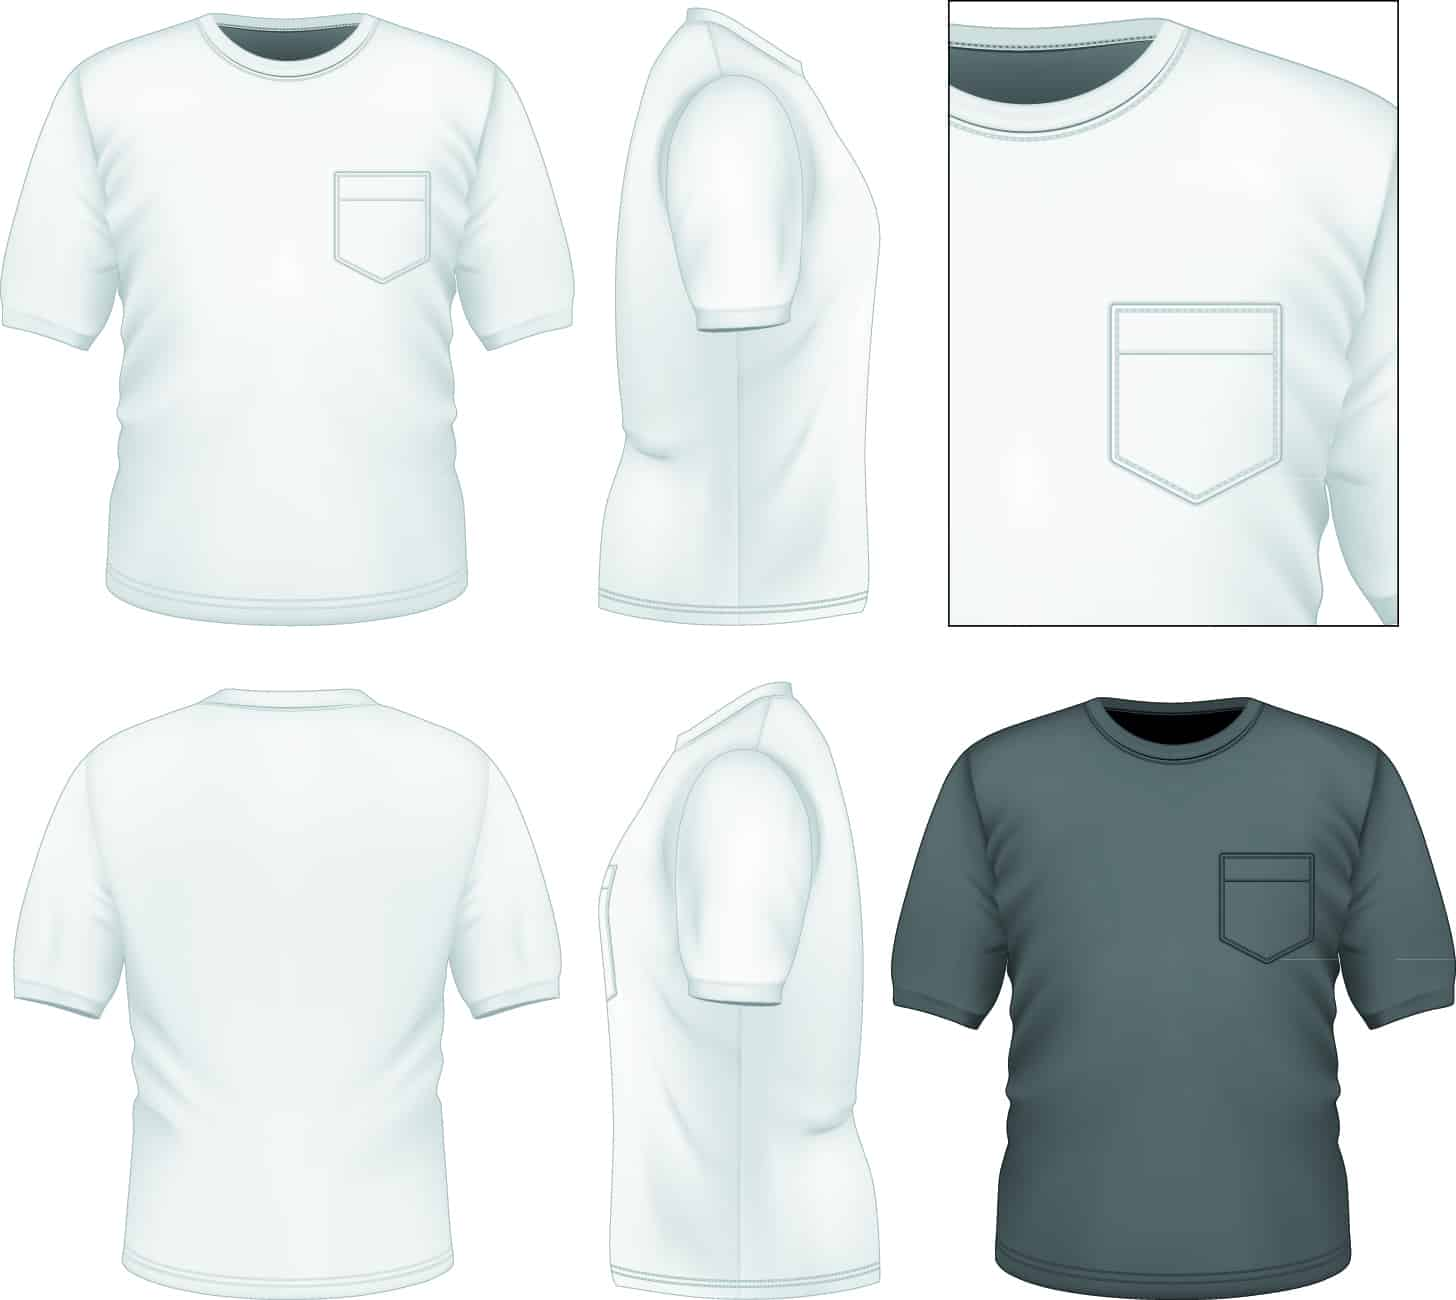 Men clothes design template vector set 01